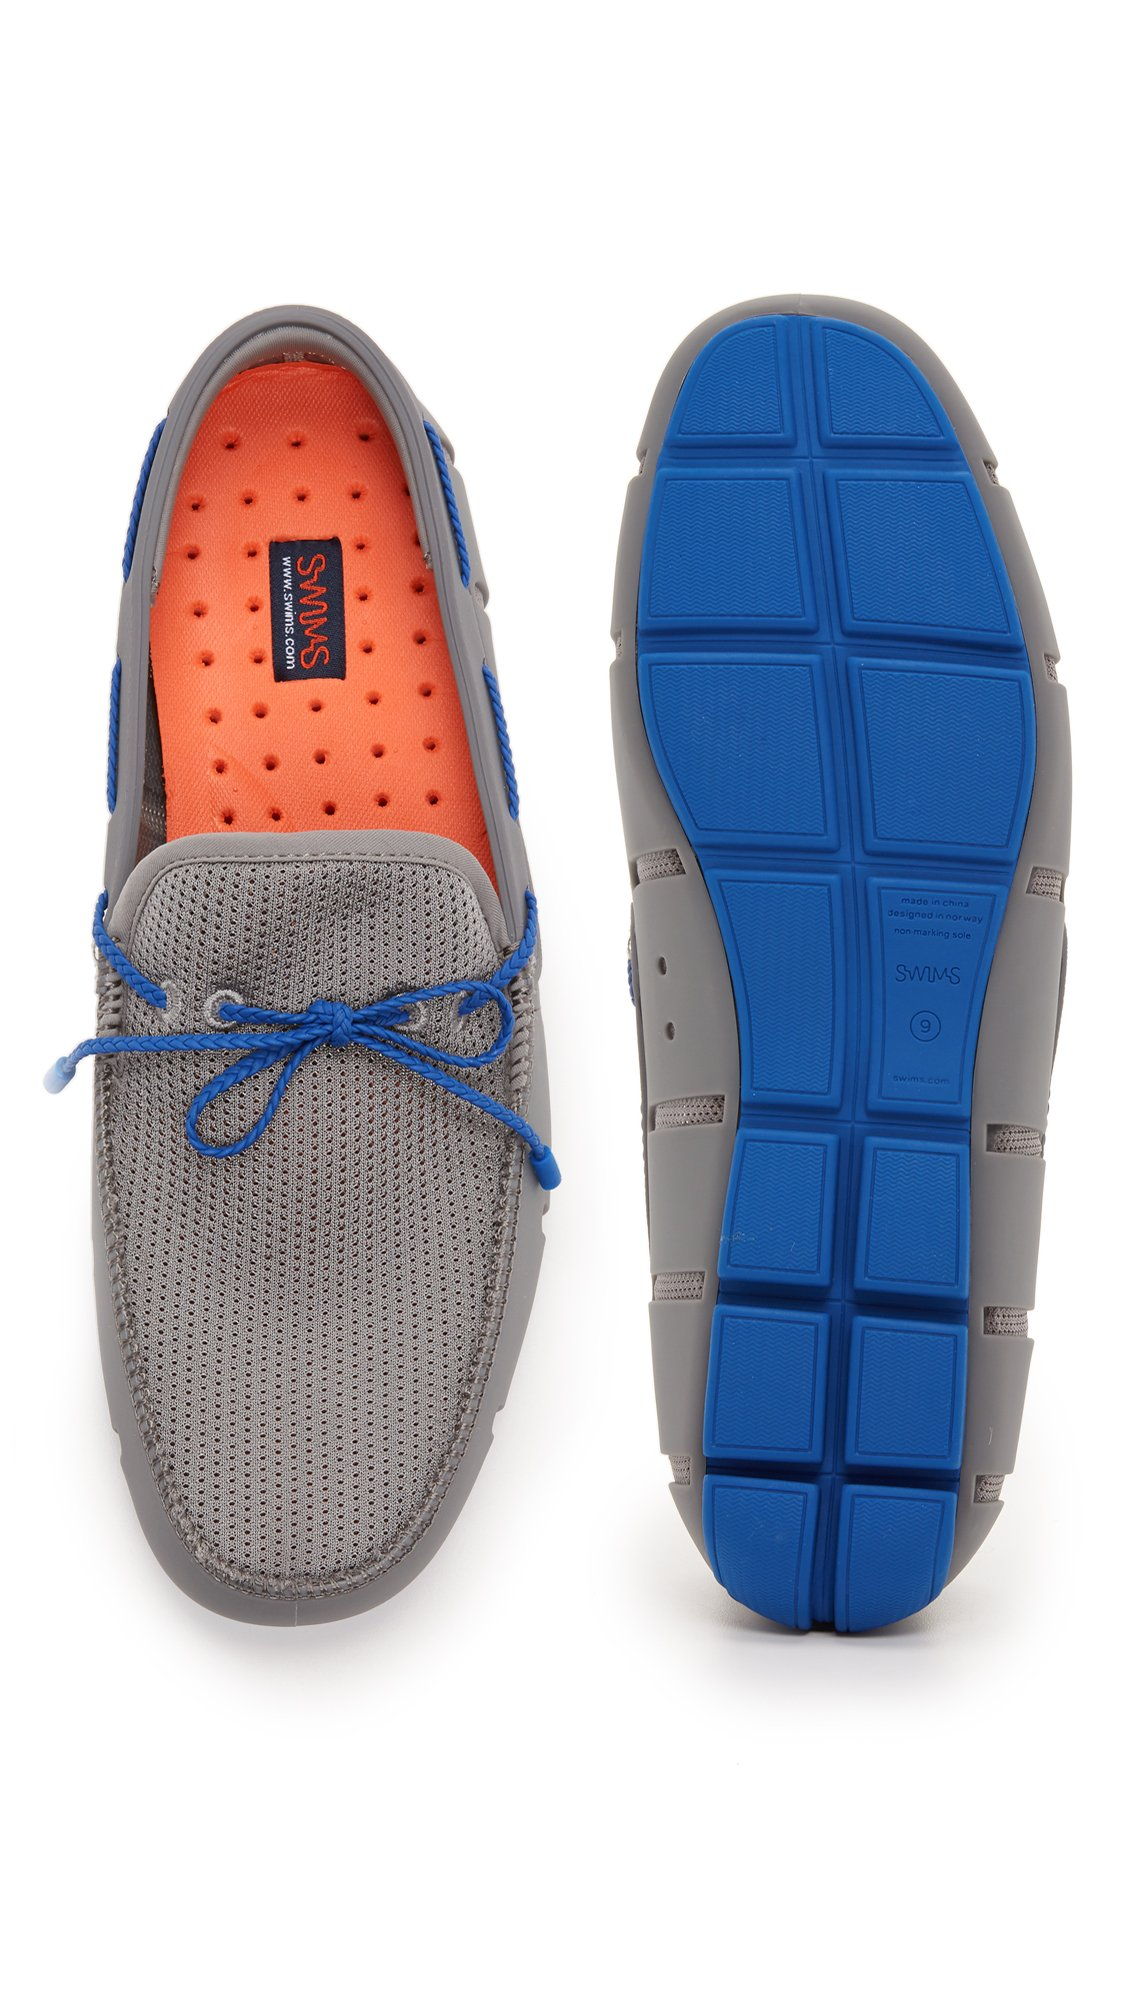 SWIMS Men's Braided Lace Loafers, Grey/Blue, 7 D(M) US by SWIMS (Image #3)